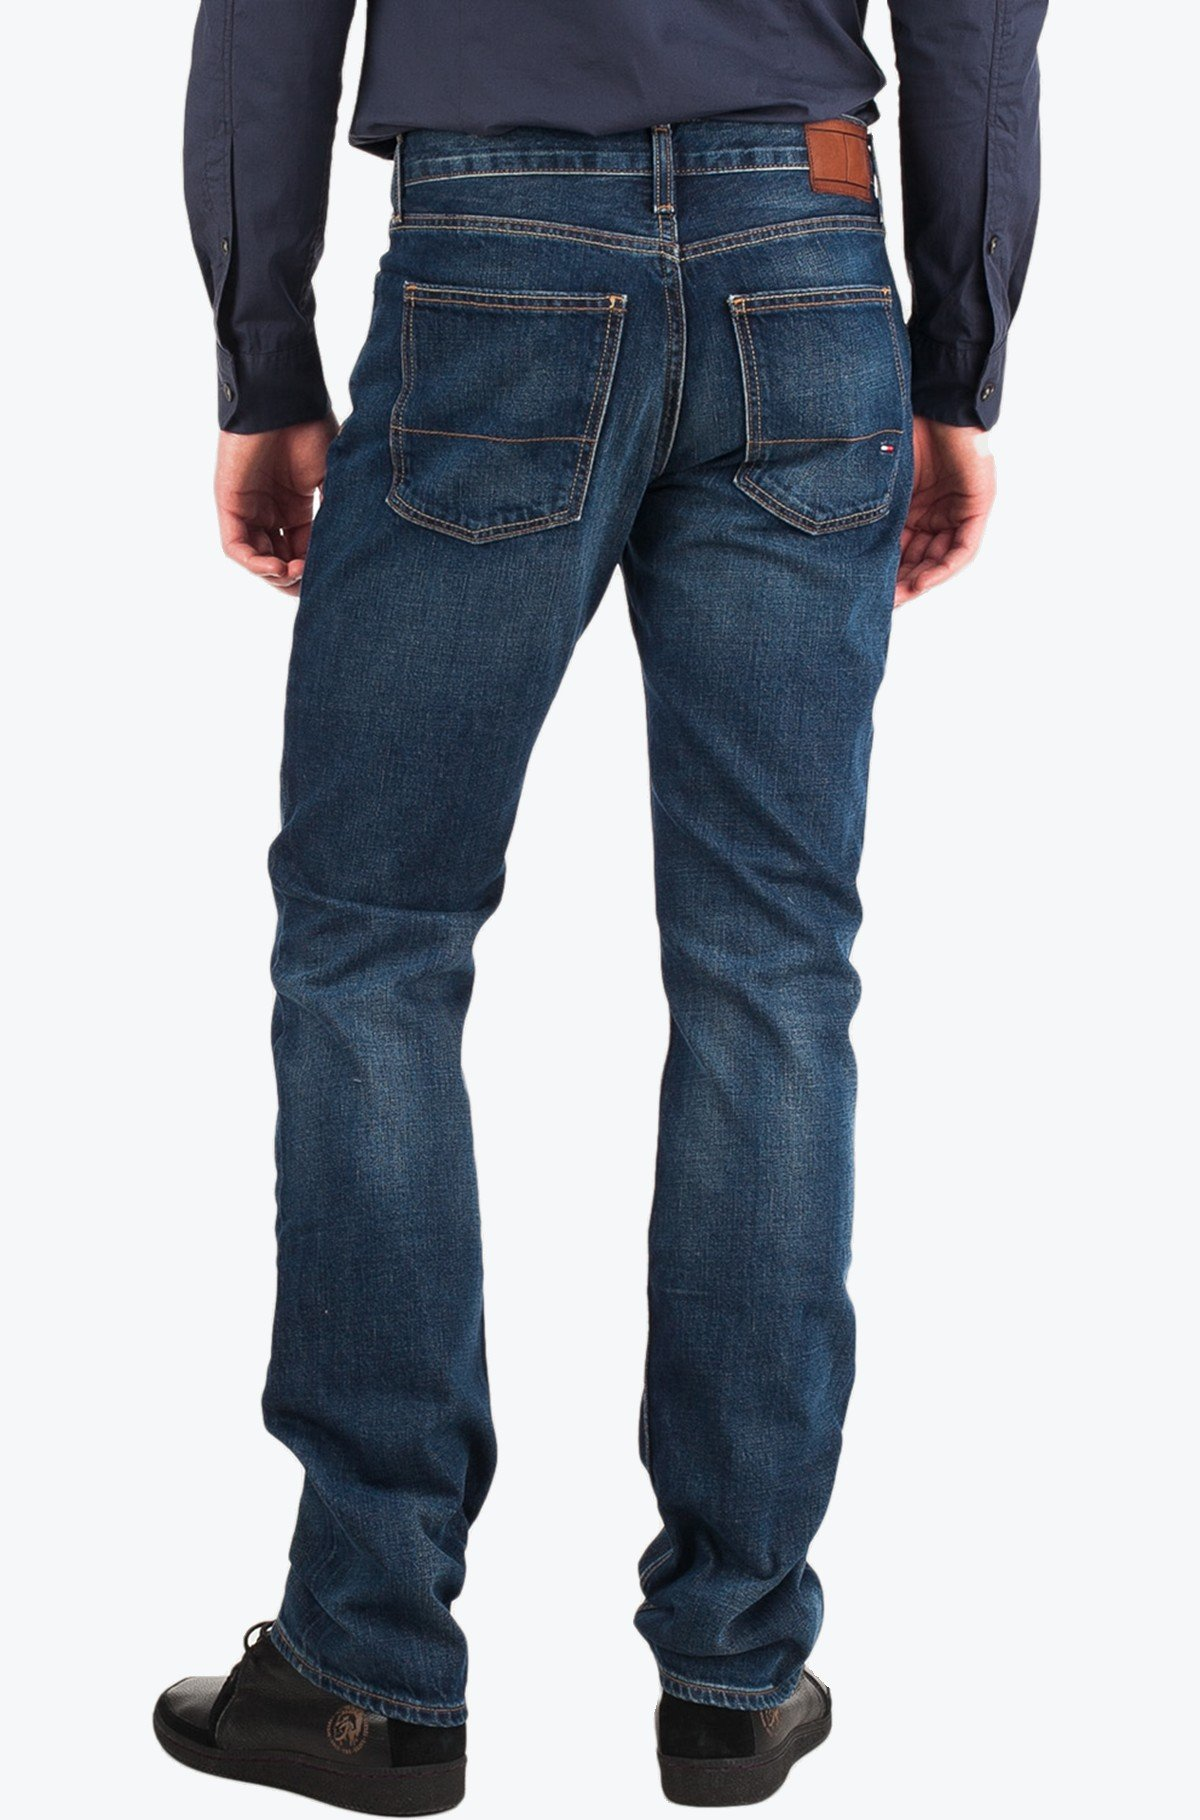 Jeans Mercer B Middle-full-2